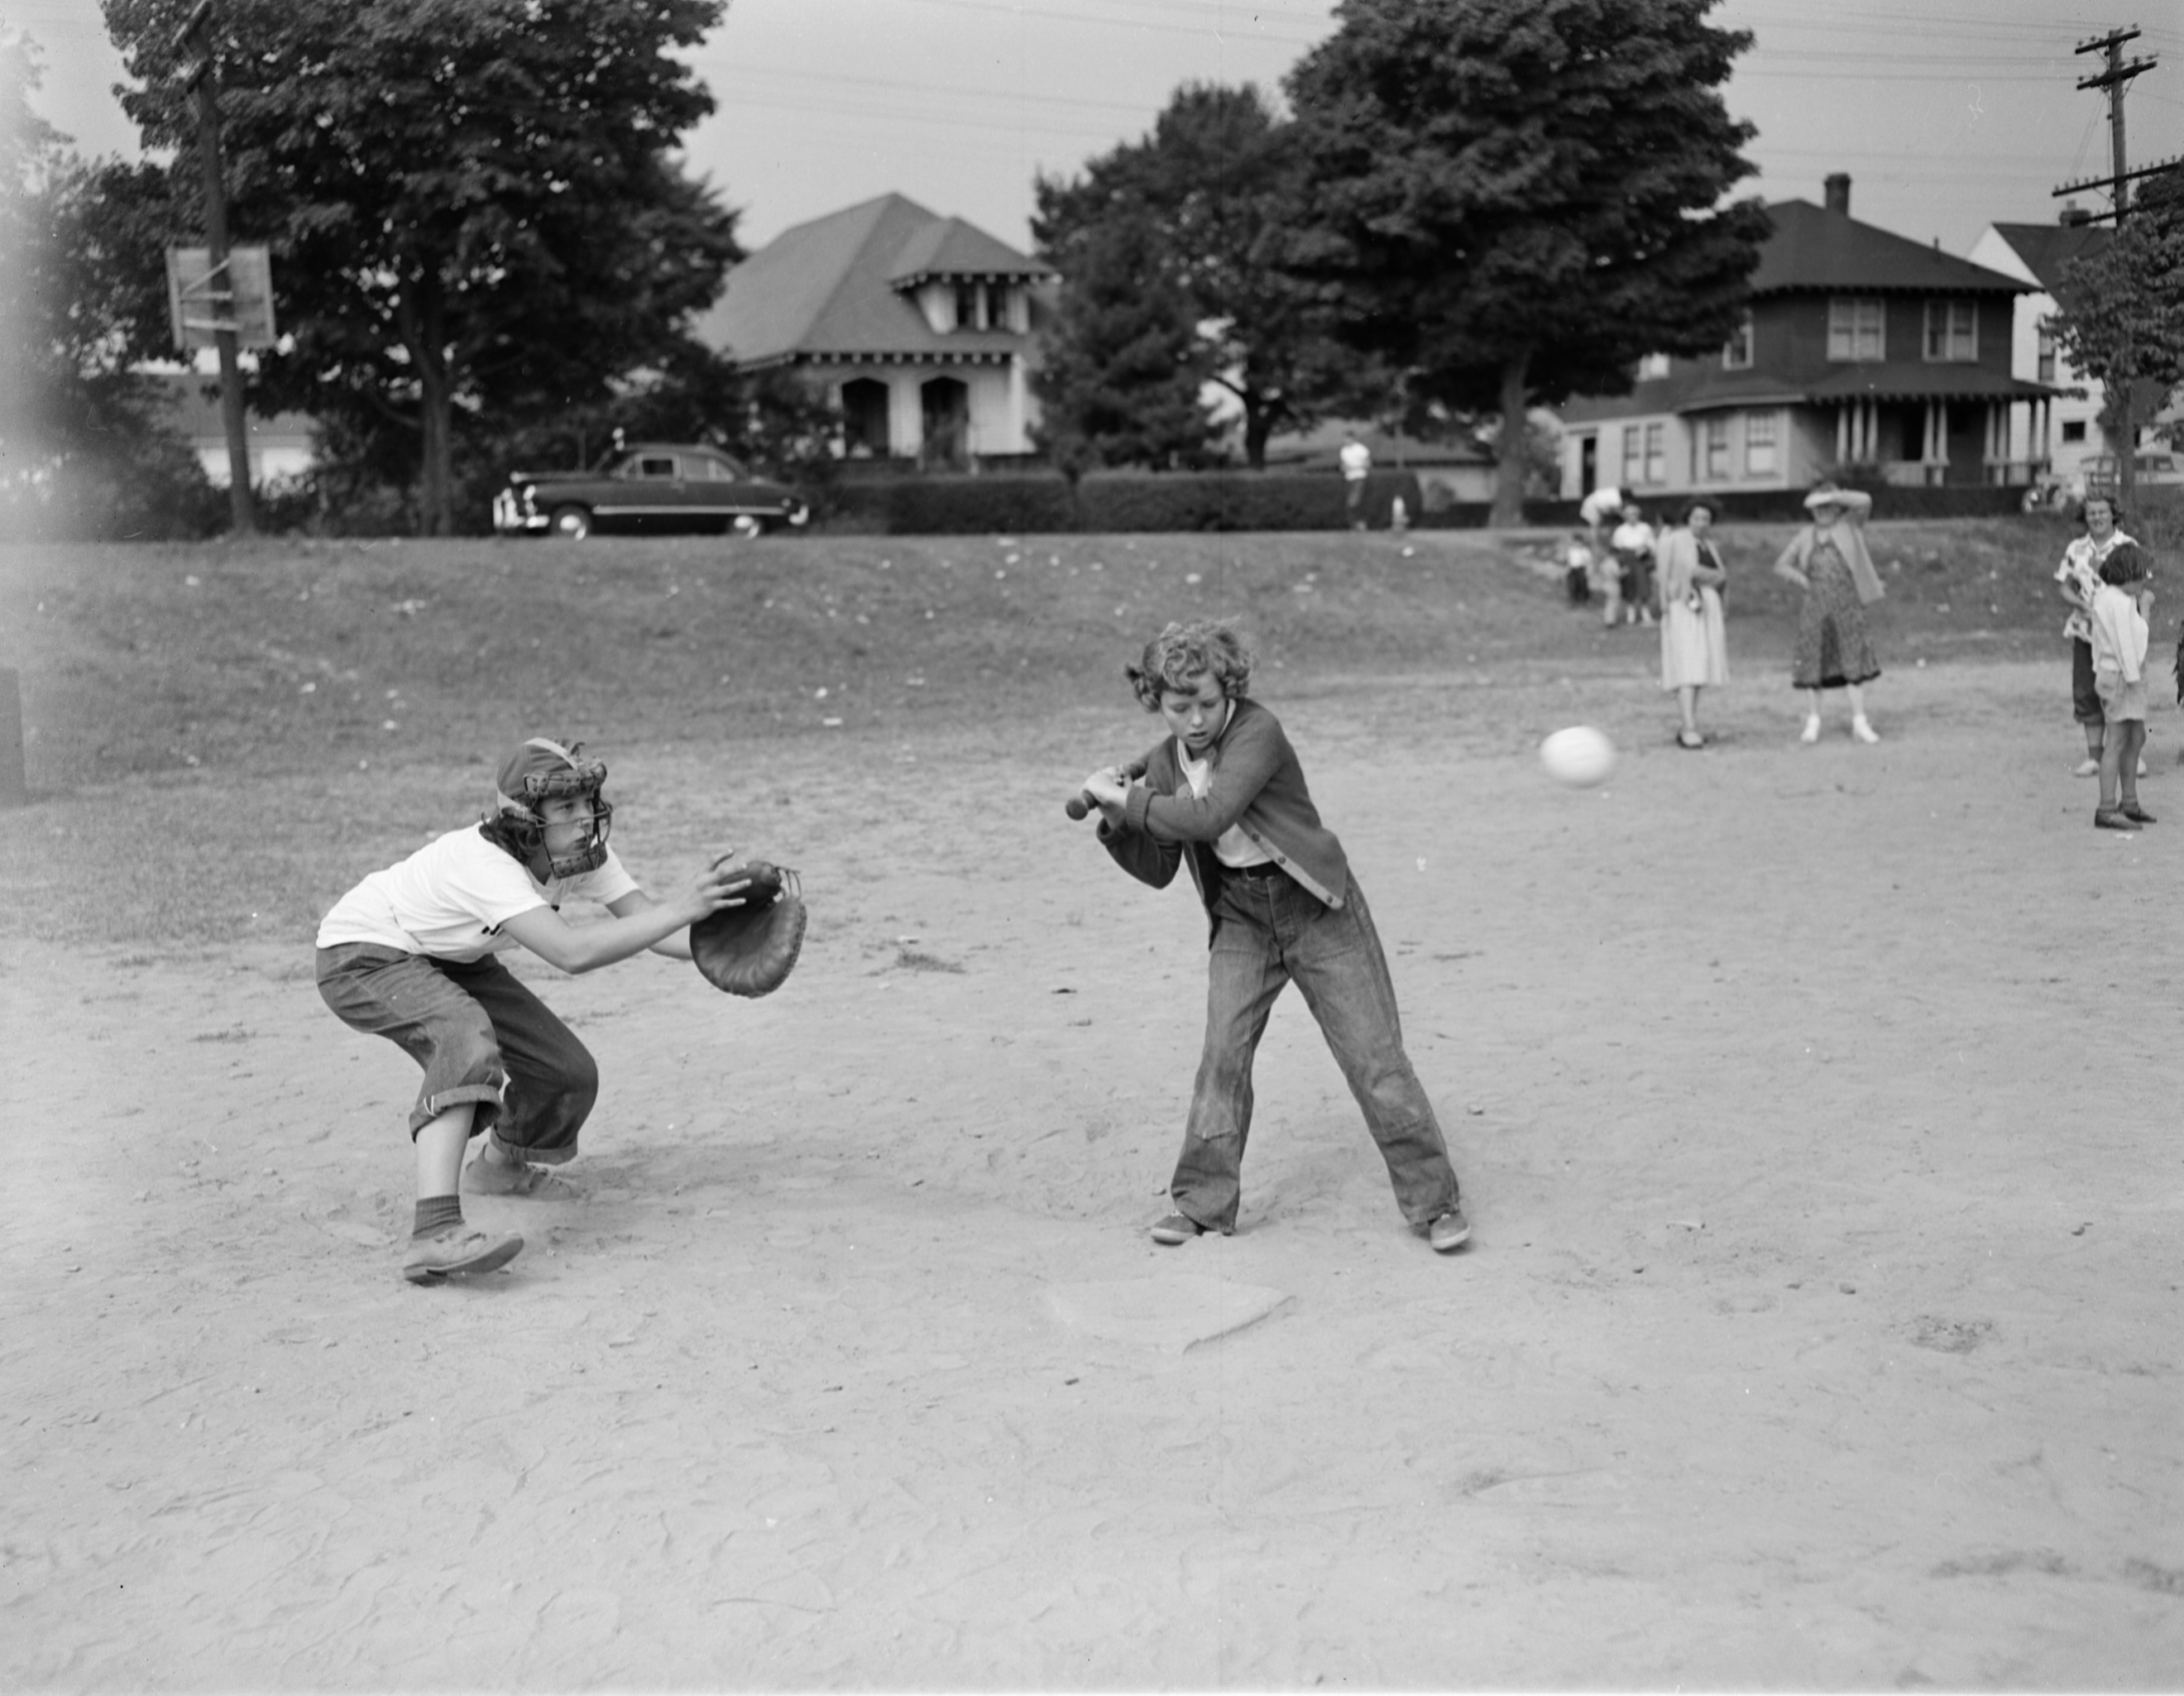 Youth Baseball Game (April 17 1949) GC145 2